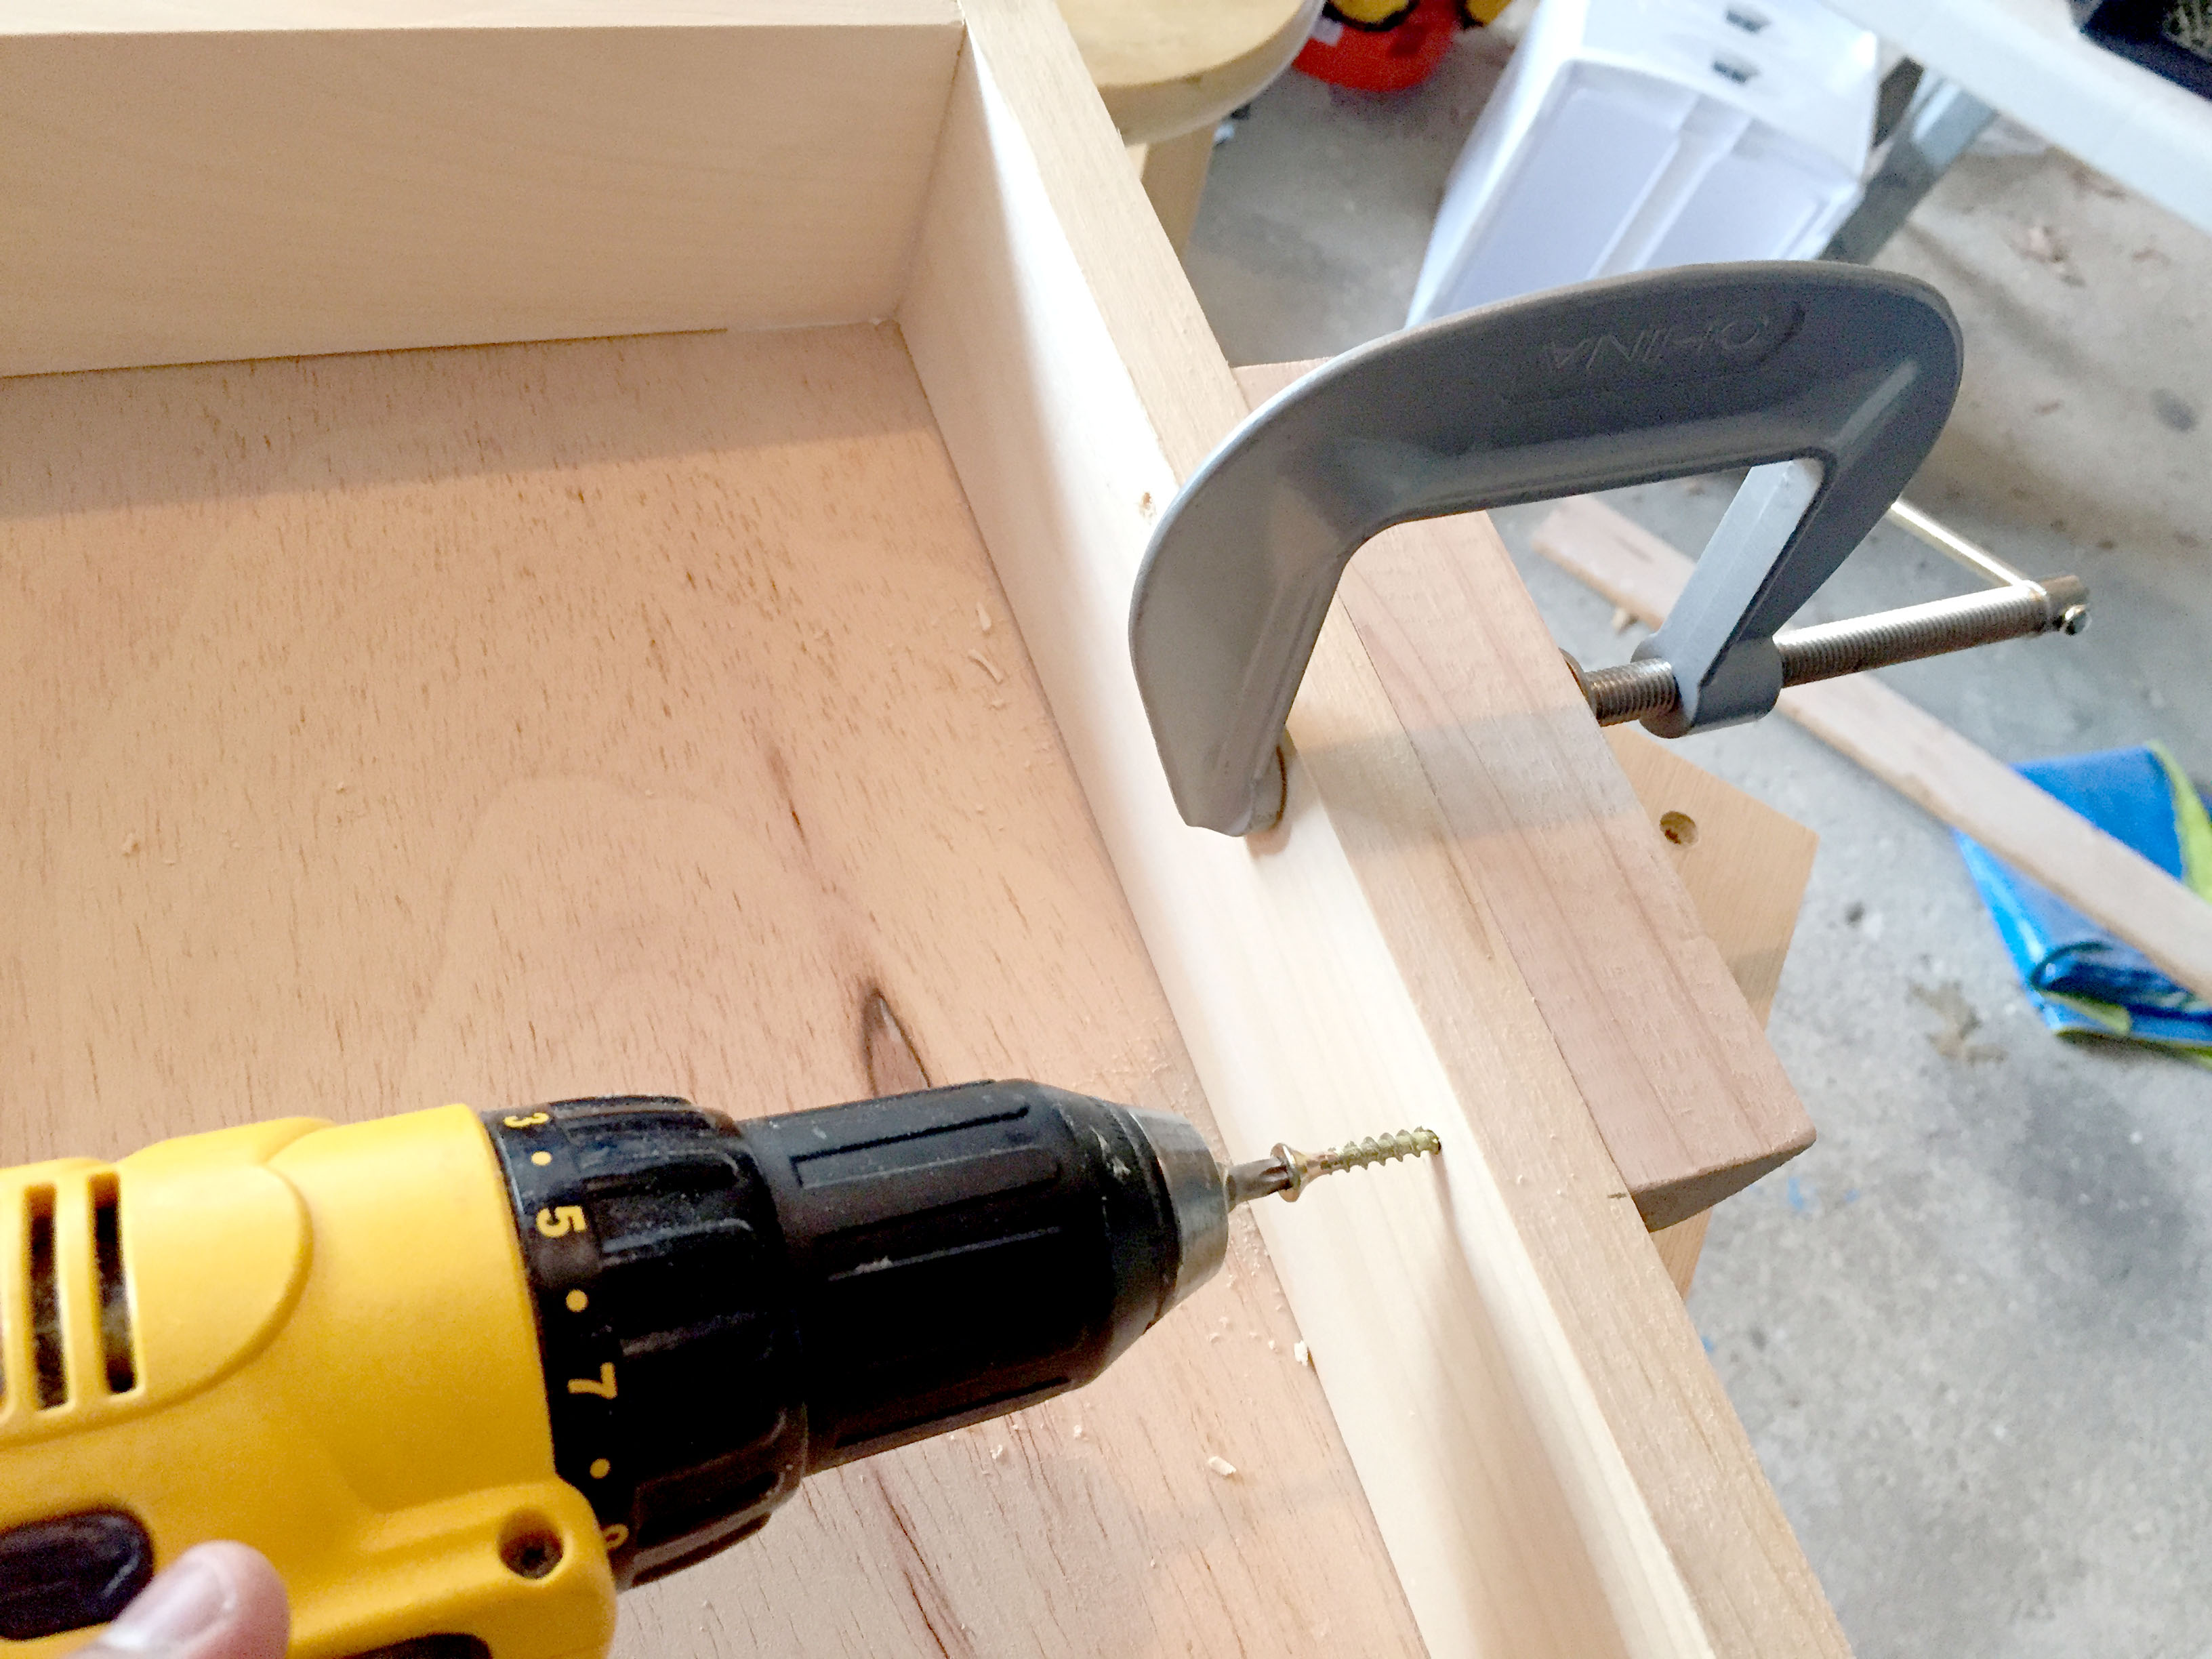 How to Make DIY Drawer Handles for 15 cents